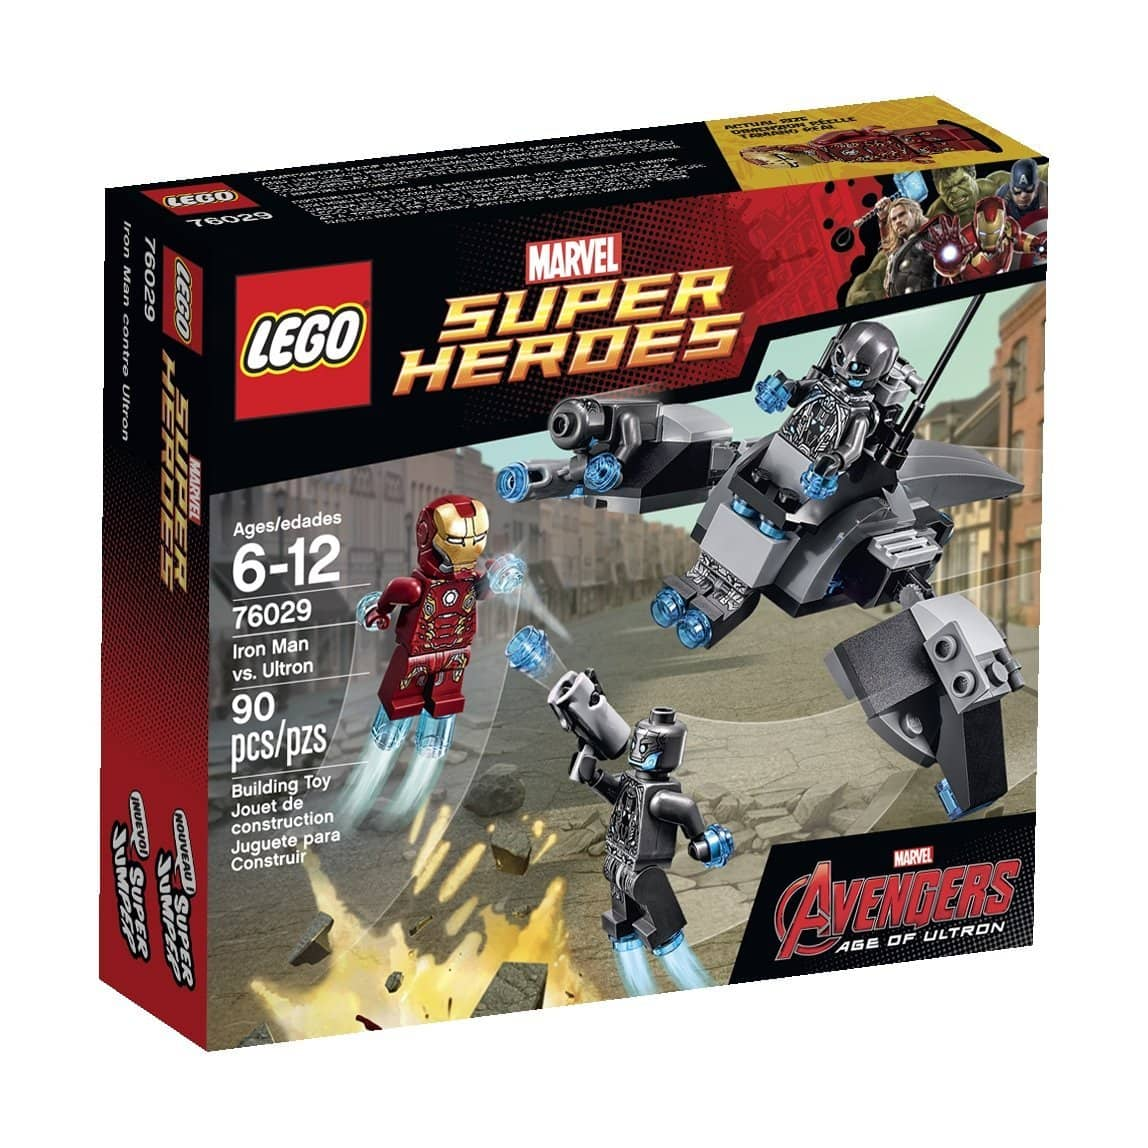 LEGO Super Heroes: Iron Man vs Ultron  $8.50 & More + Free Store Pickup